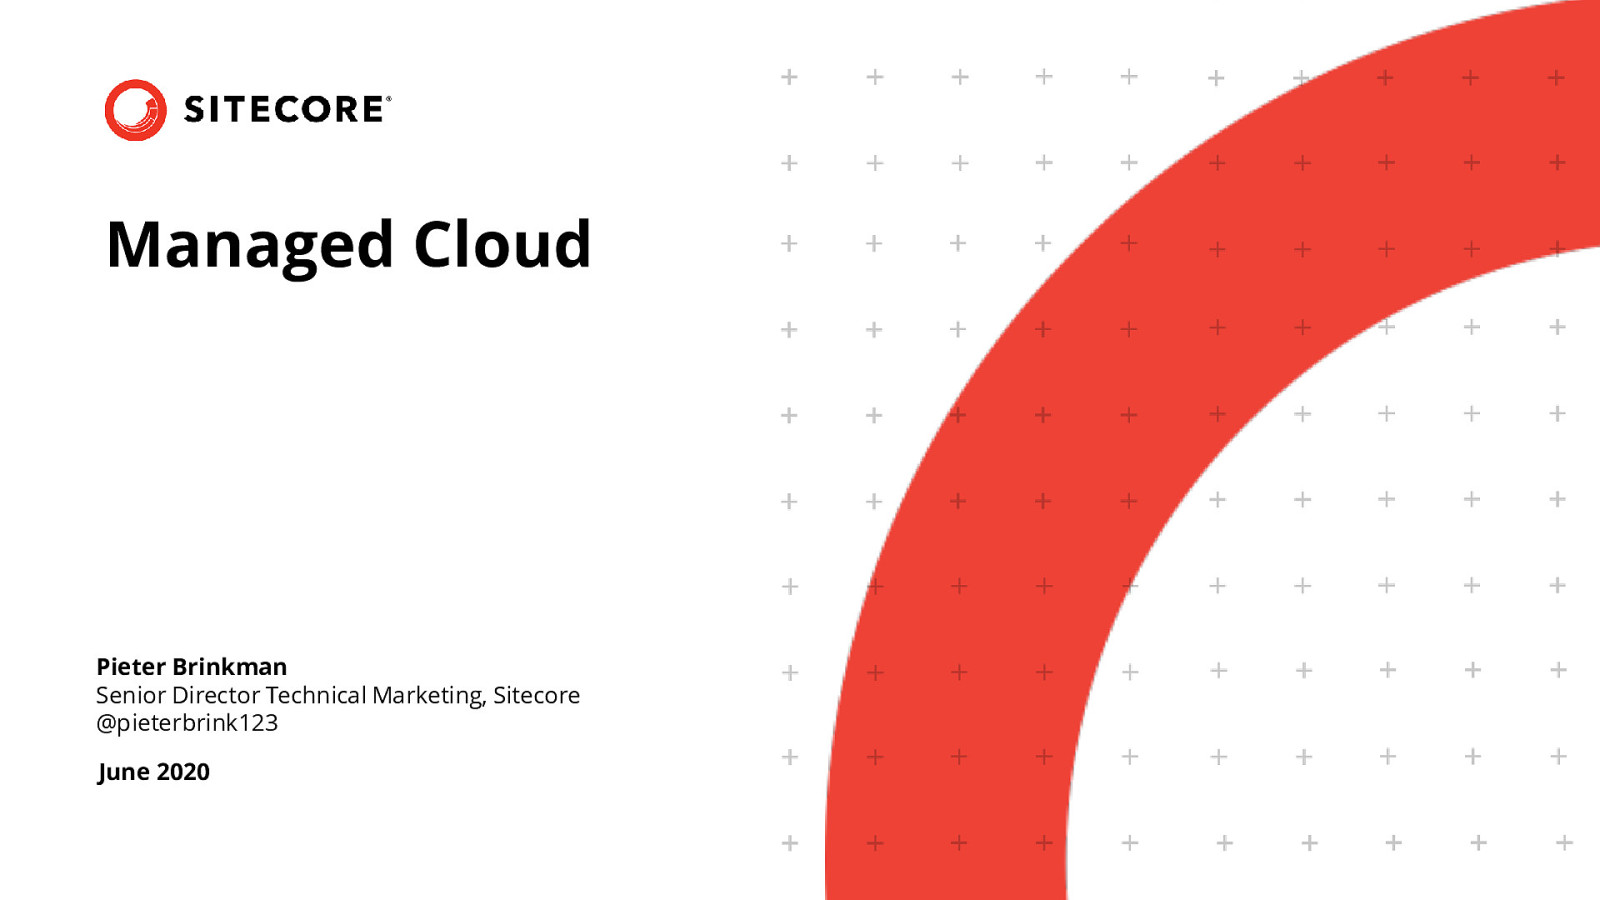 Introduction to Sitecore Managed Cloud